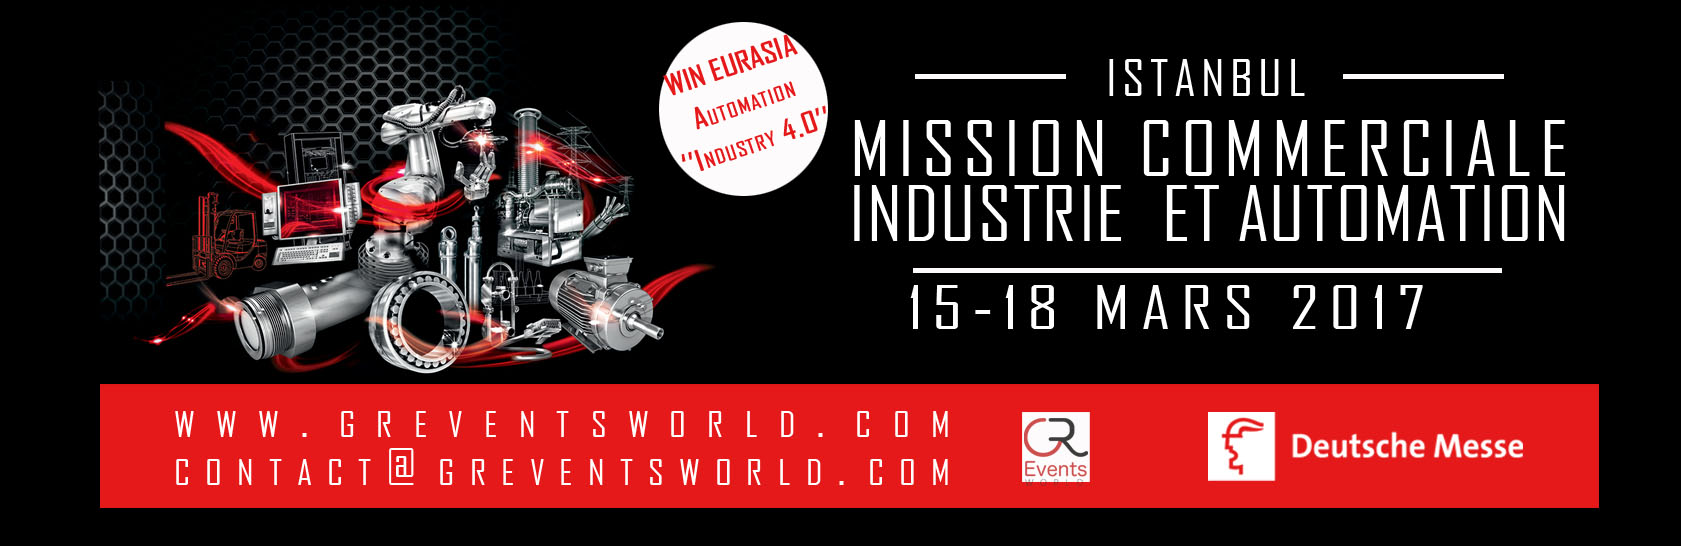 MISSION  COMMERCIALE  INDUSTRIE  ET AUTOMATION